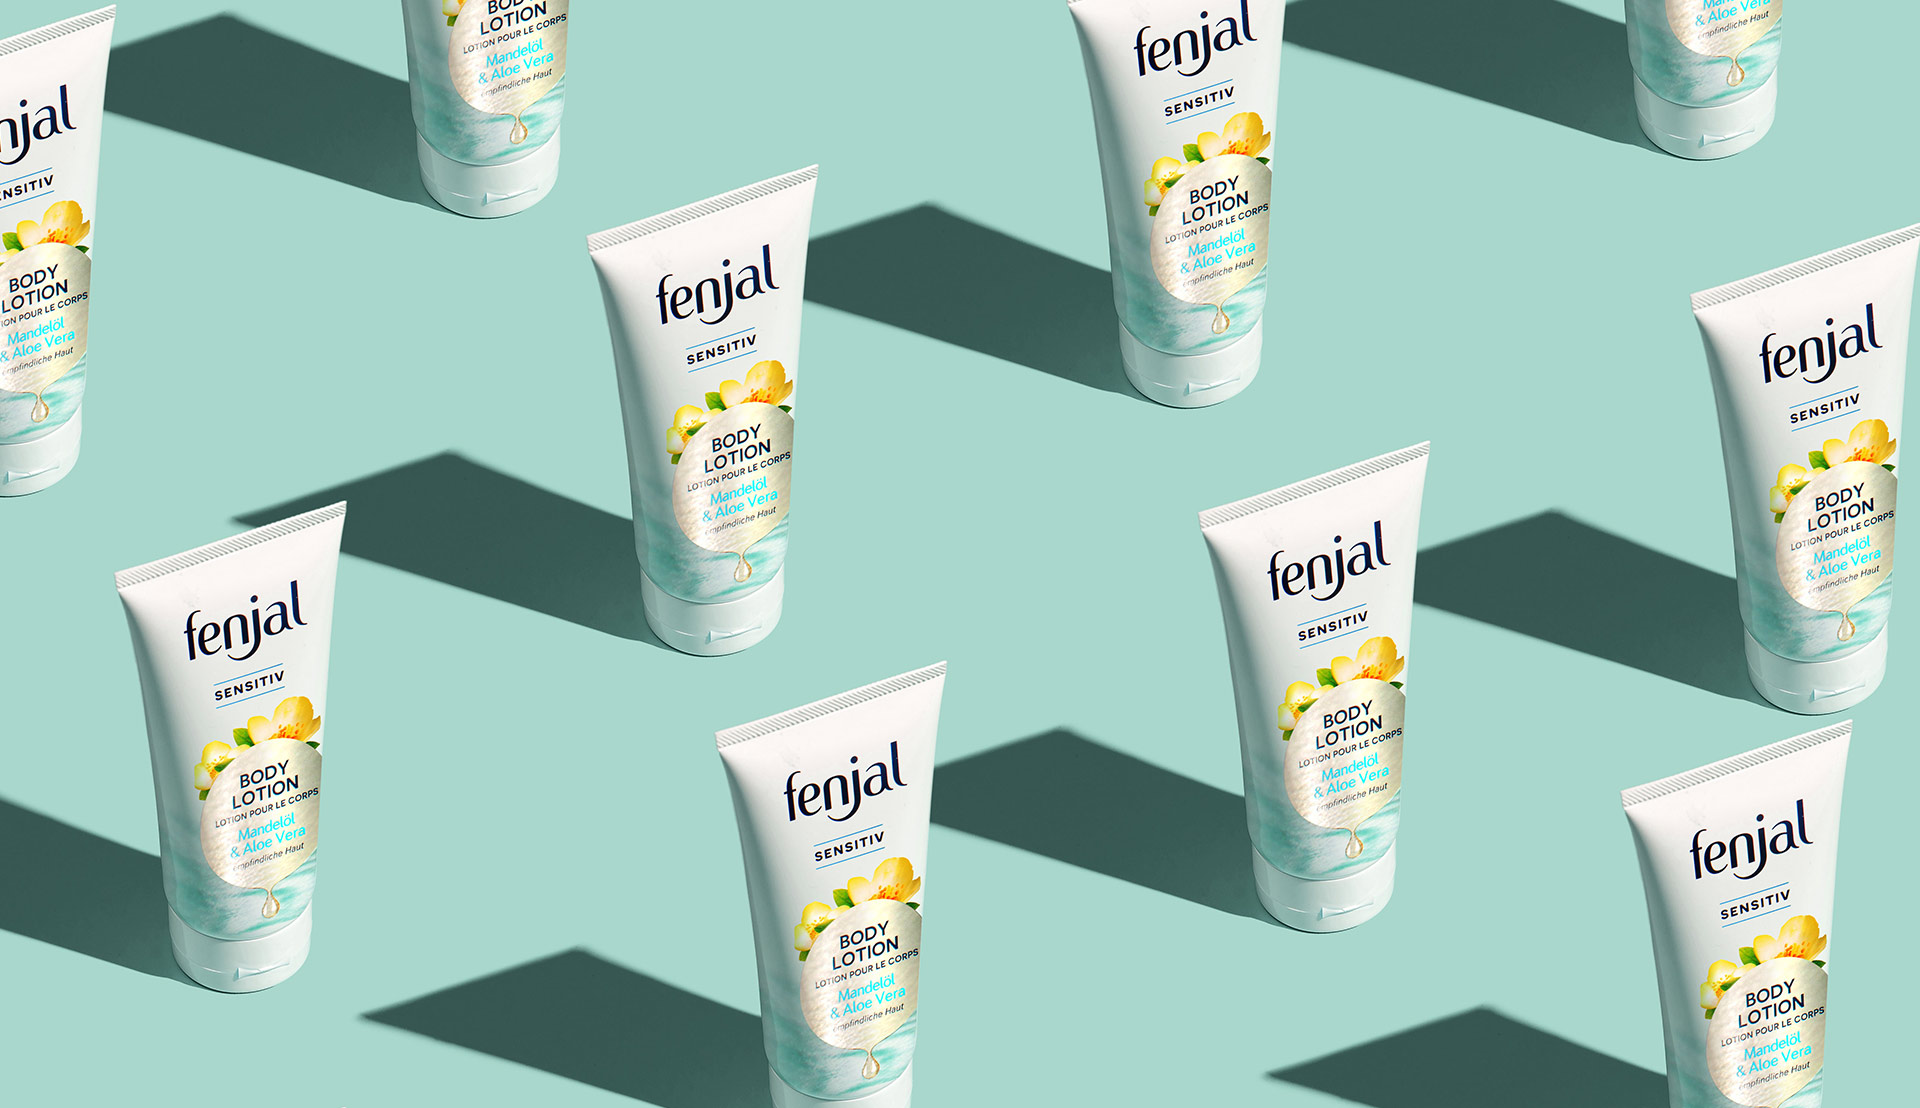 Fenjal Body Lotion Verpackungsdesign